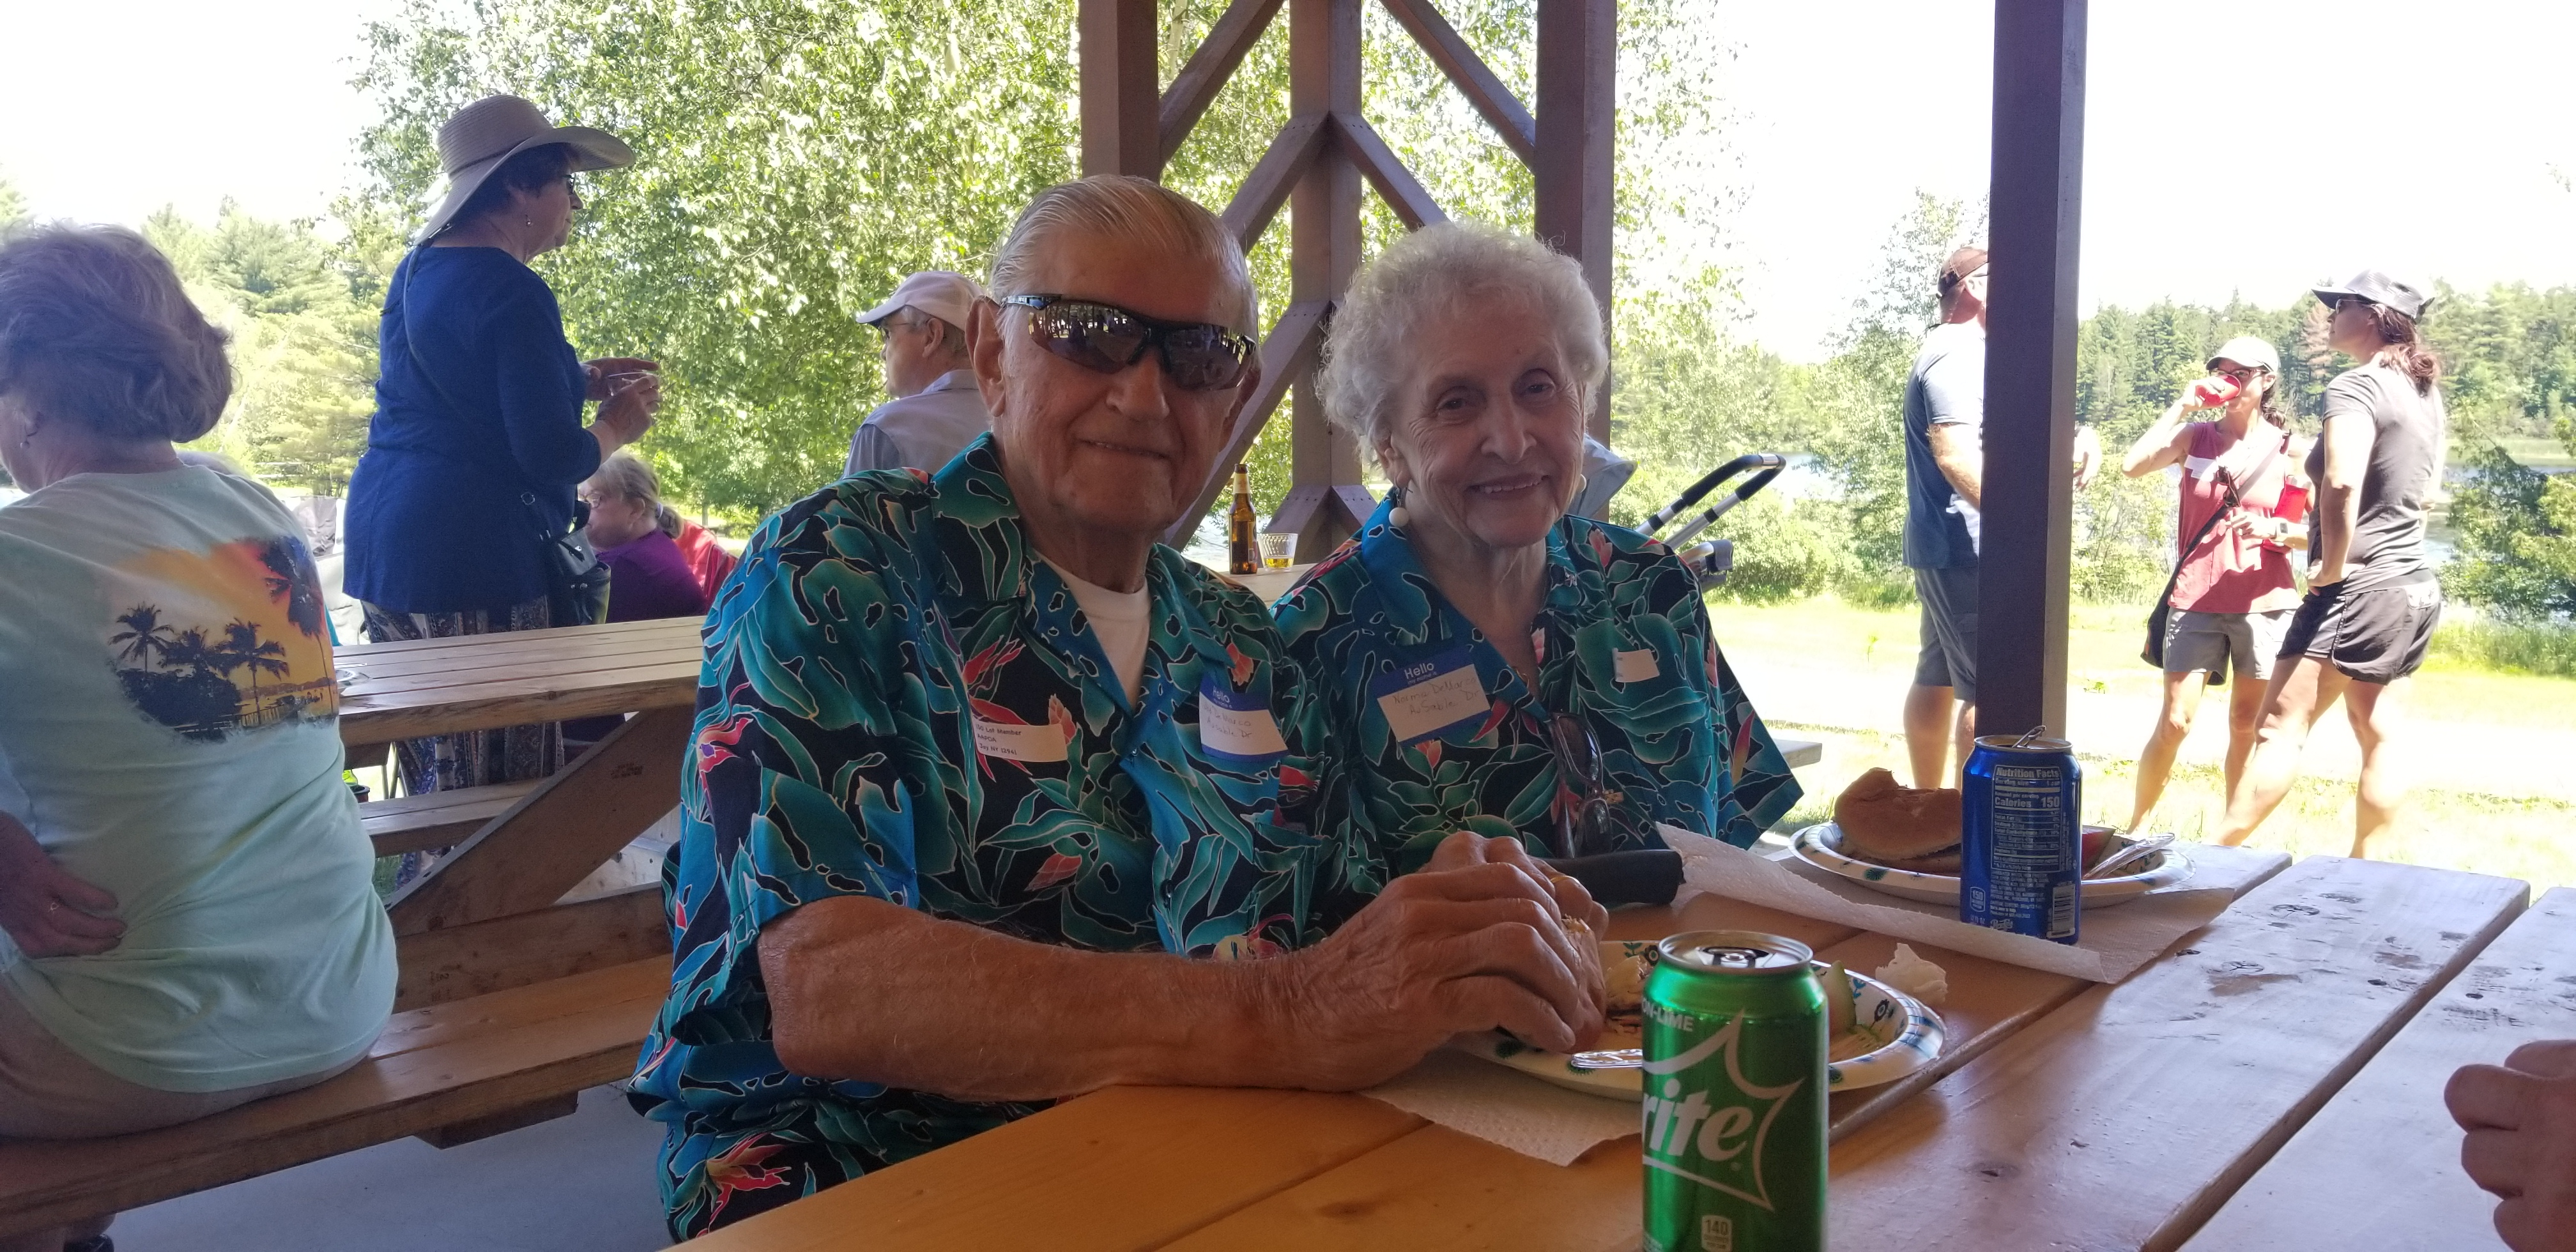 Joe and Norma DeMarco at Picnic